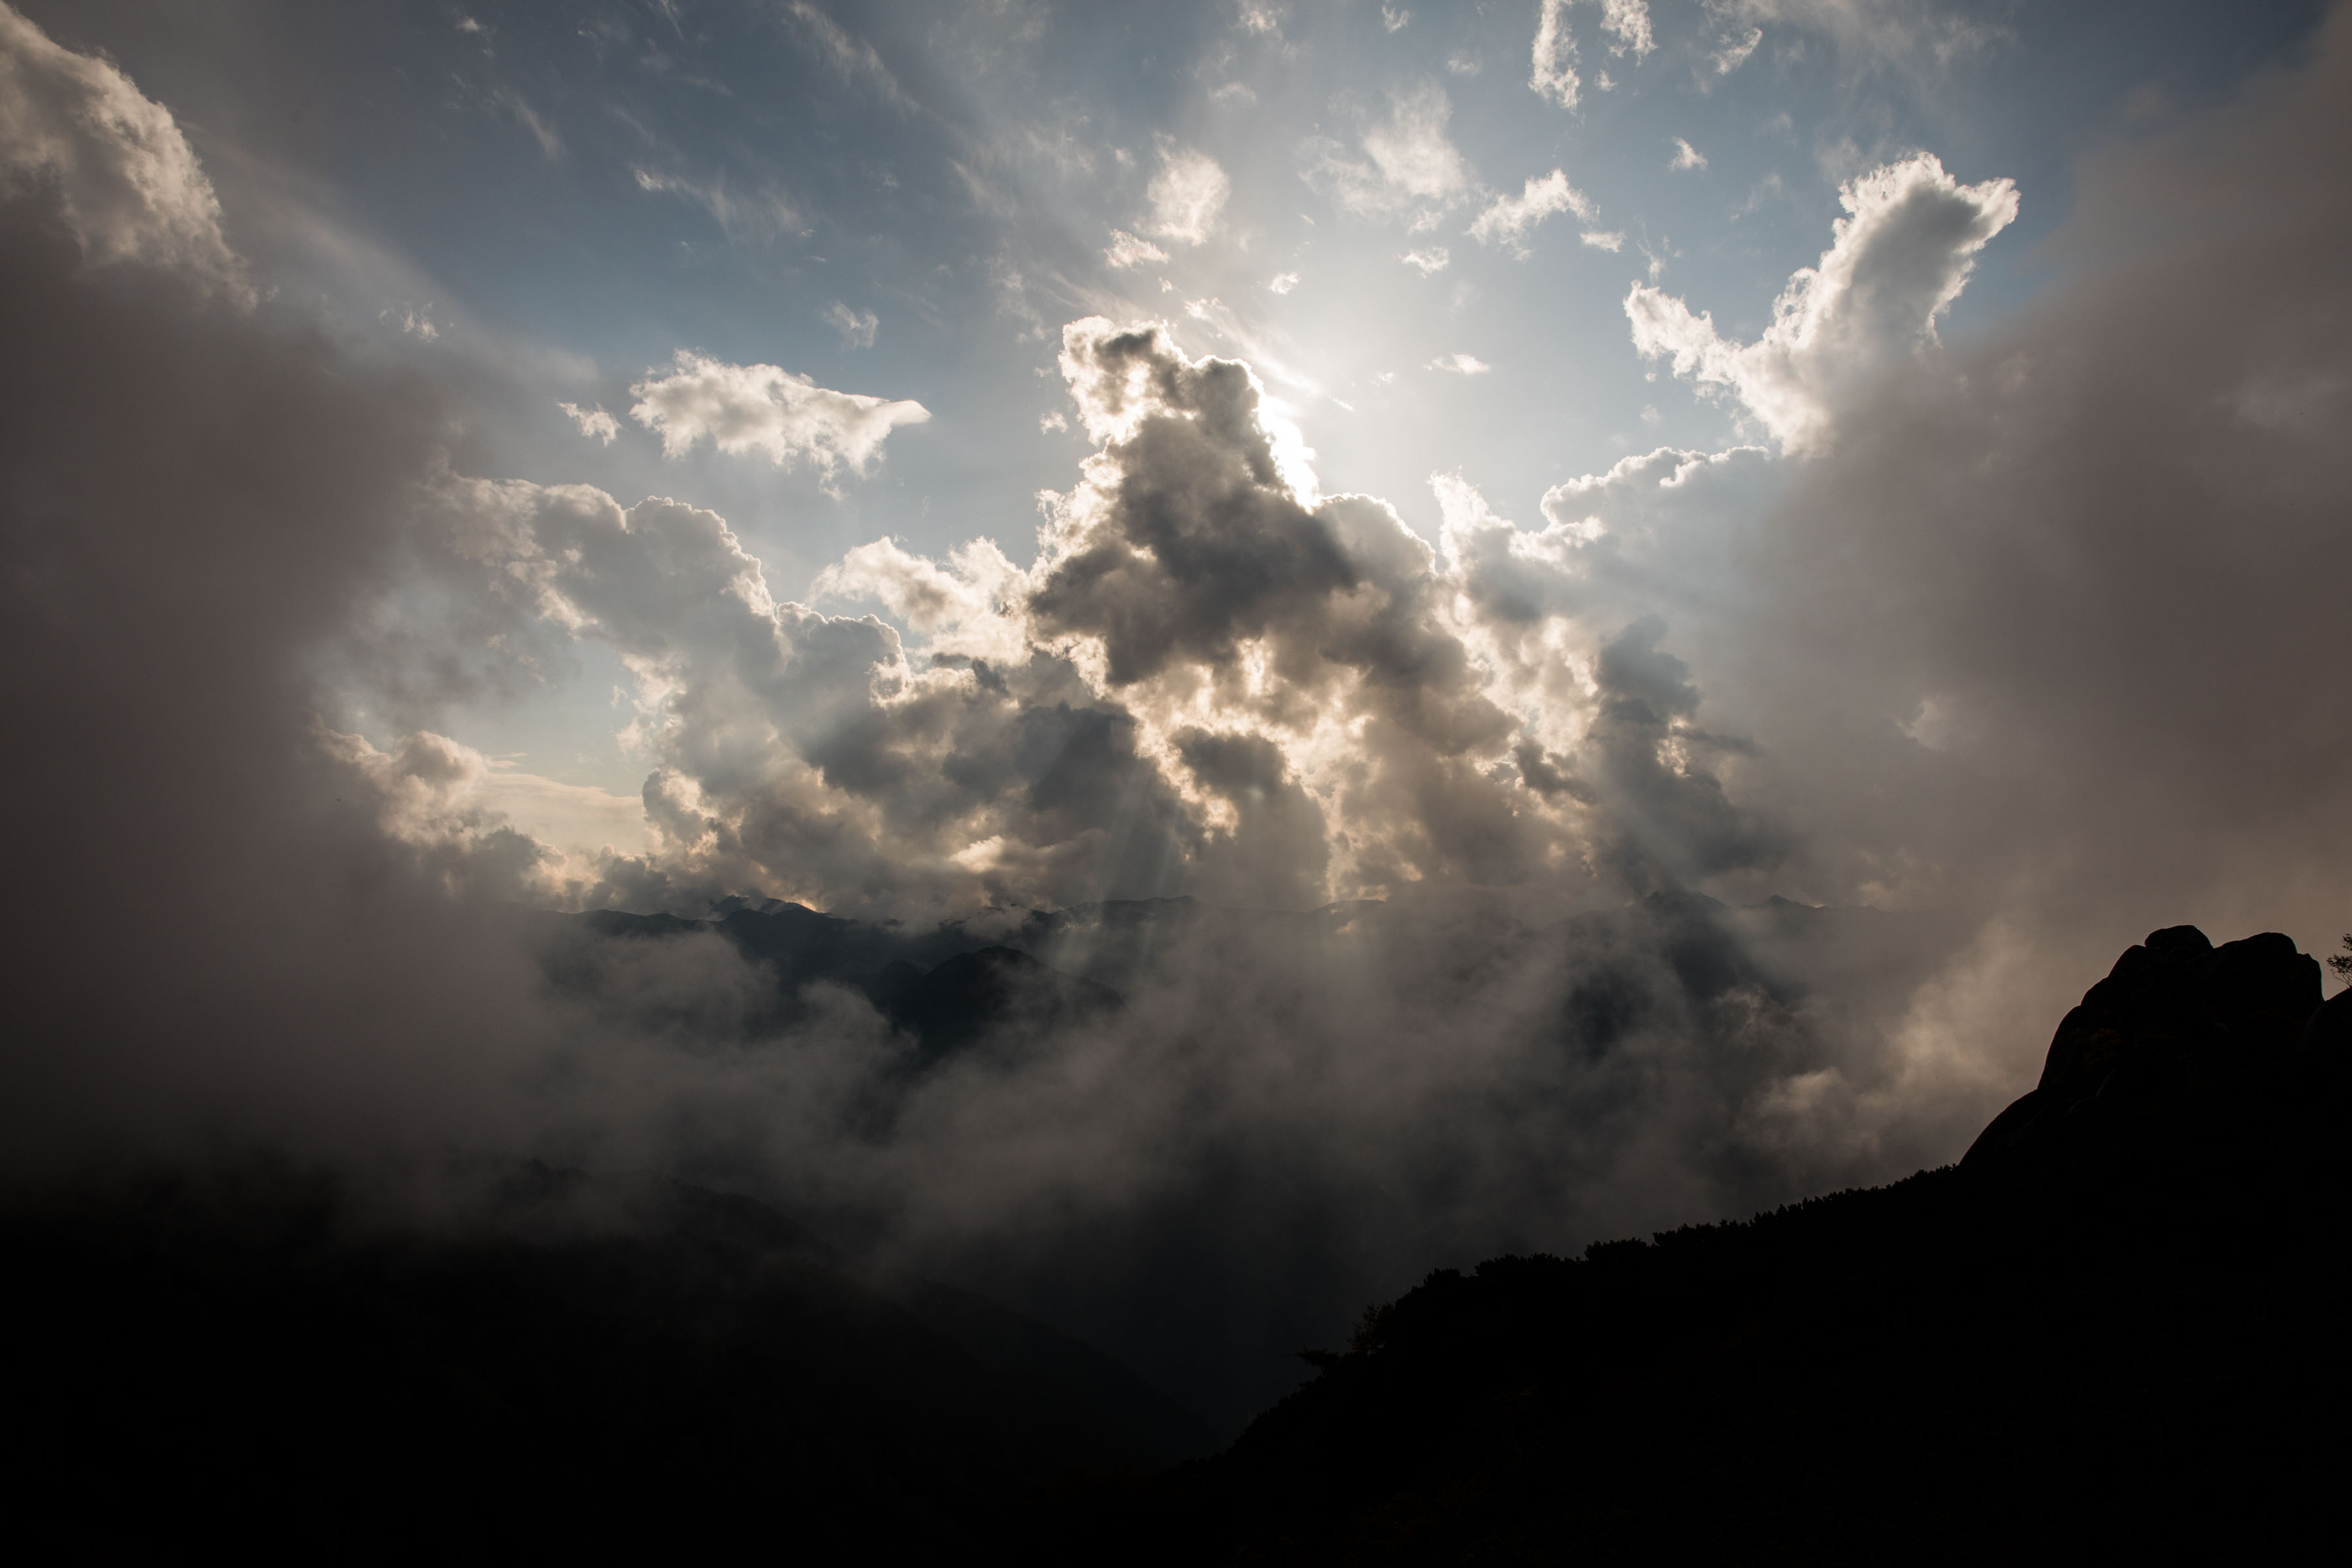 Devine clouds and light, Japan Alps